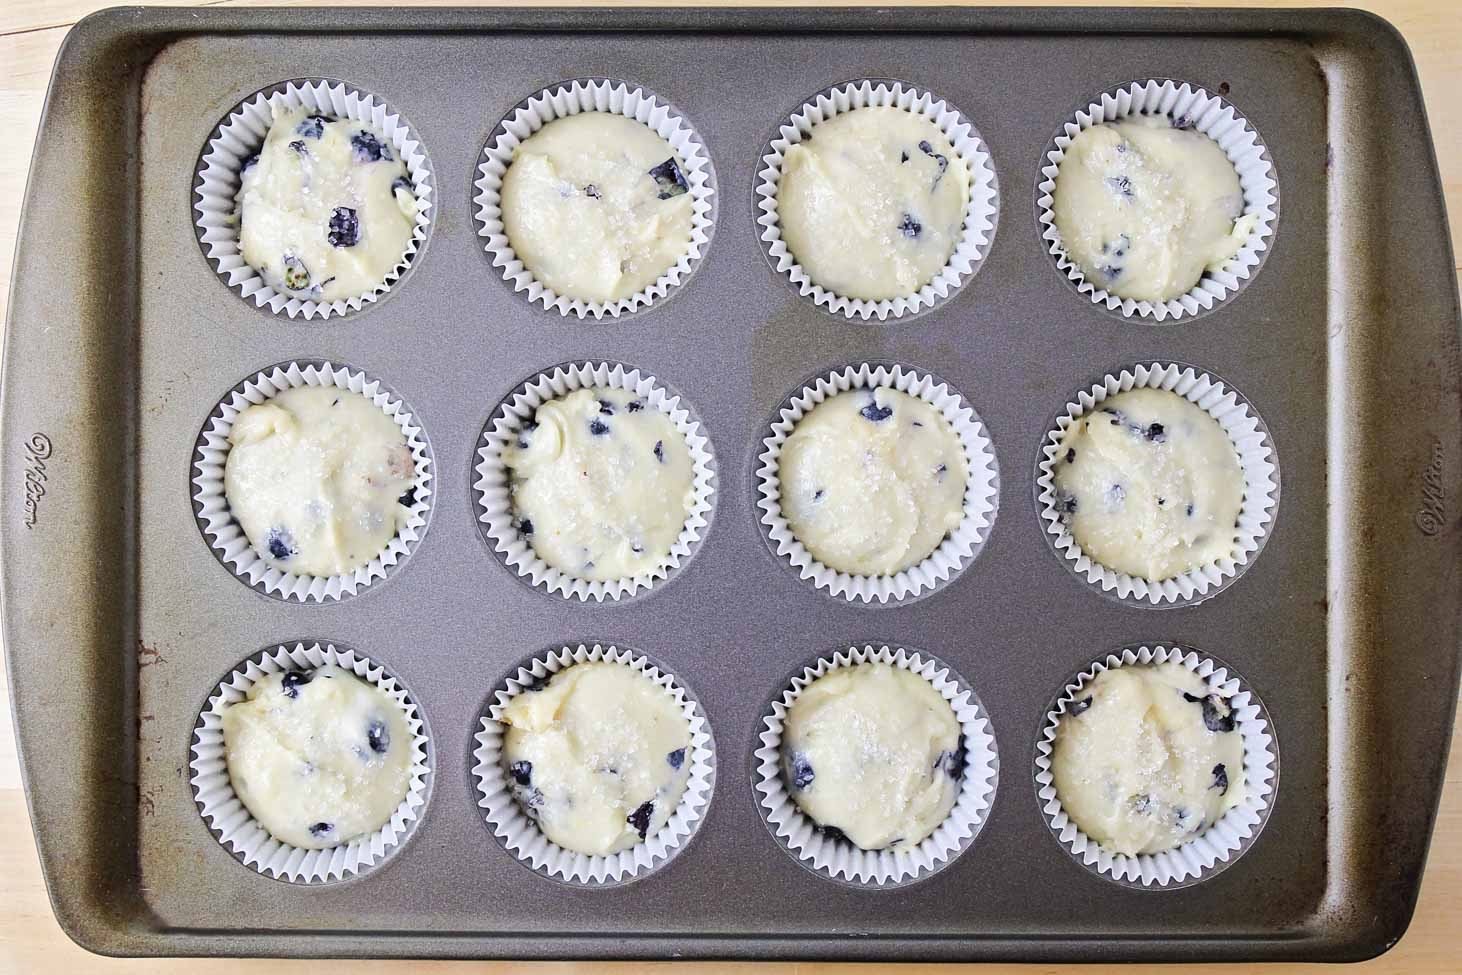 Homemade blueberry muffins in muffin tin